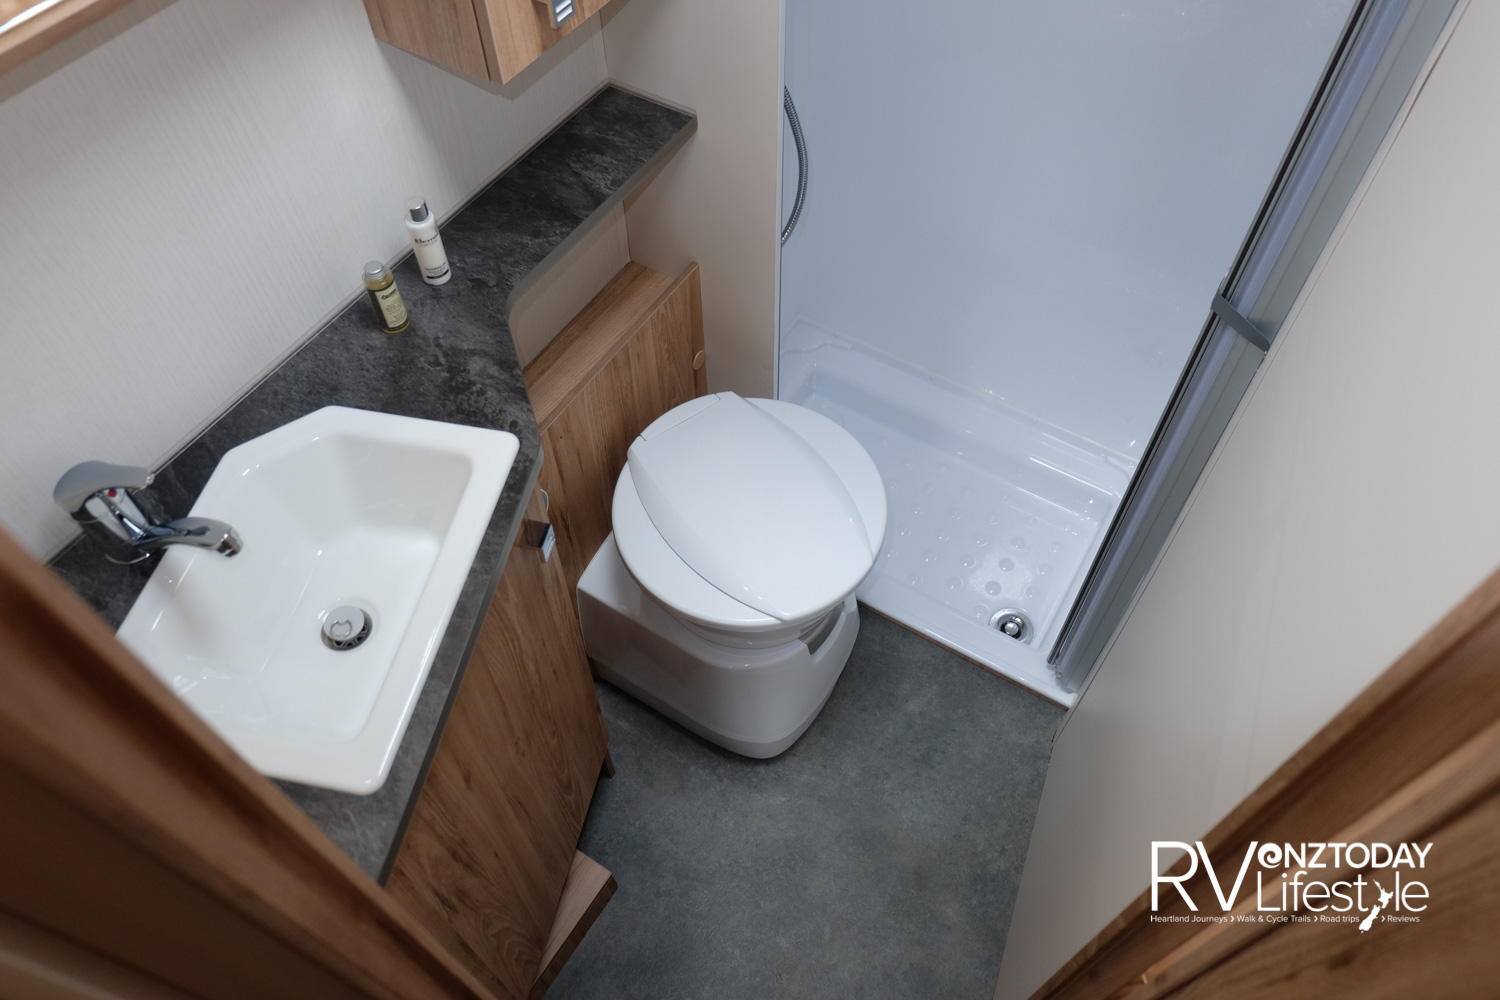 The bathroom is good size for such a compact vehicle. Sink/vanity unit with storage to the left, mirror and storage cabinets above, cassette toilet in the middle with shelf storage behind, separate shower stall to the right with pull-out concertina door